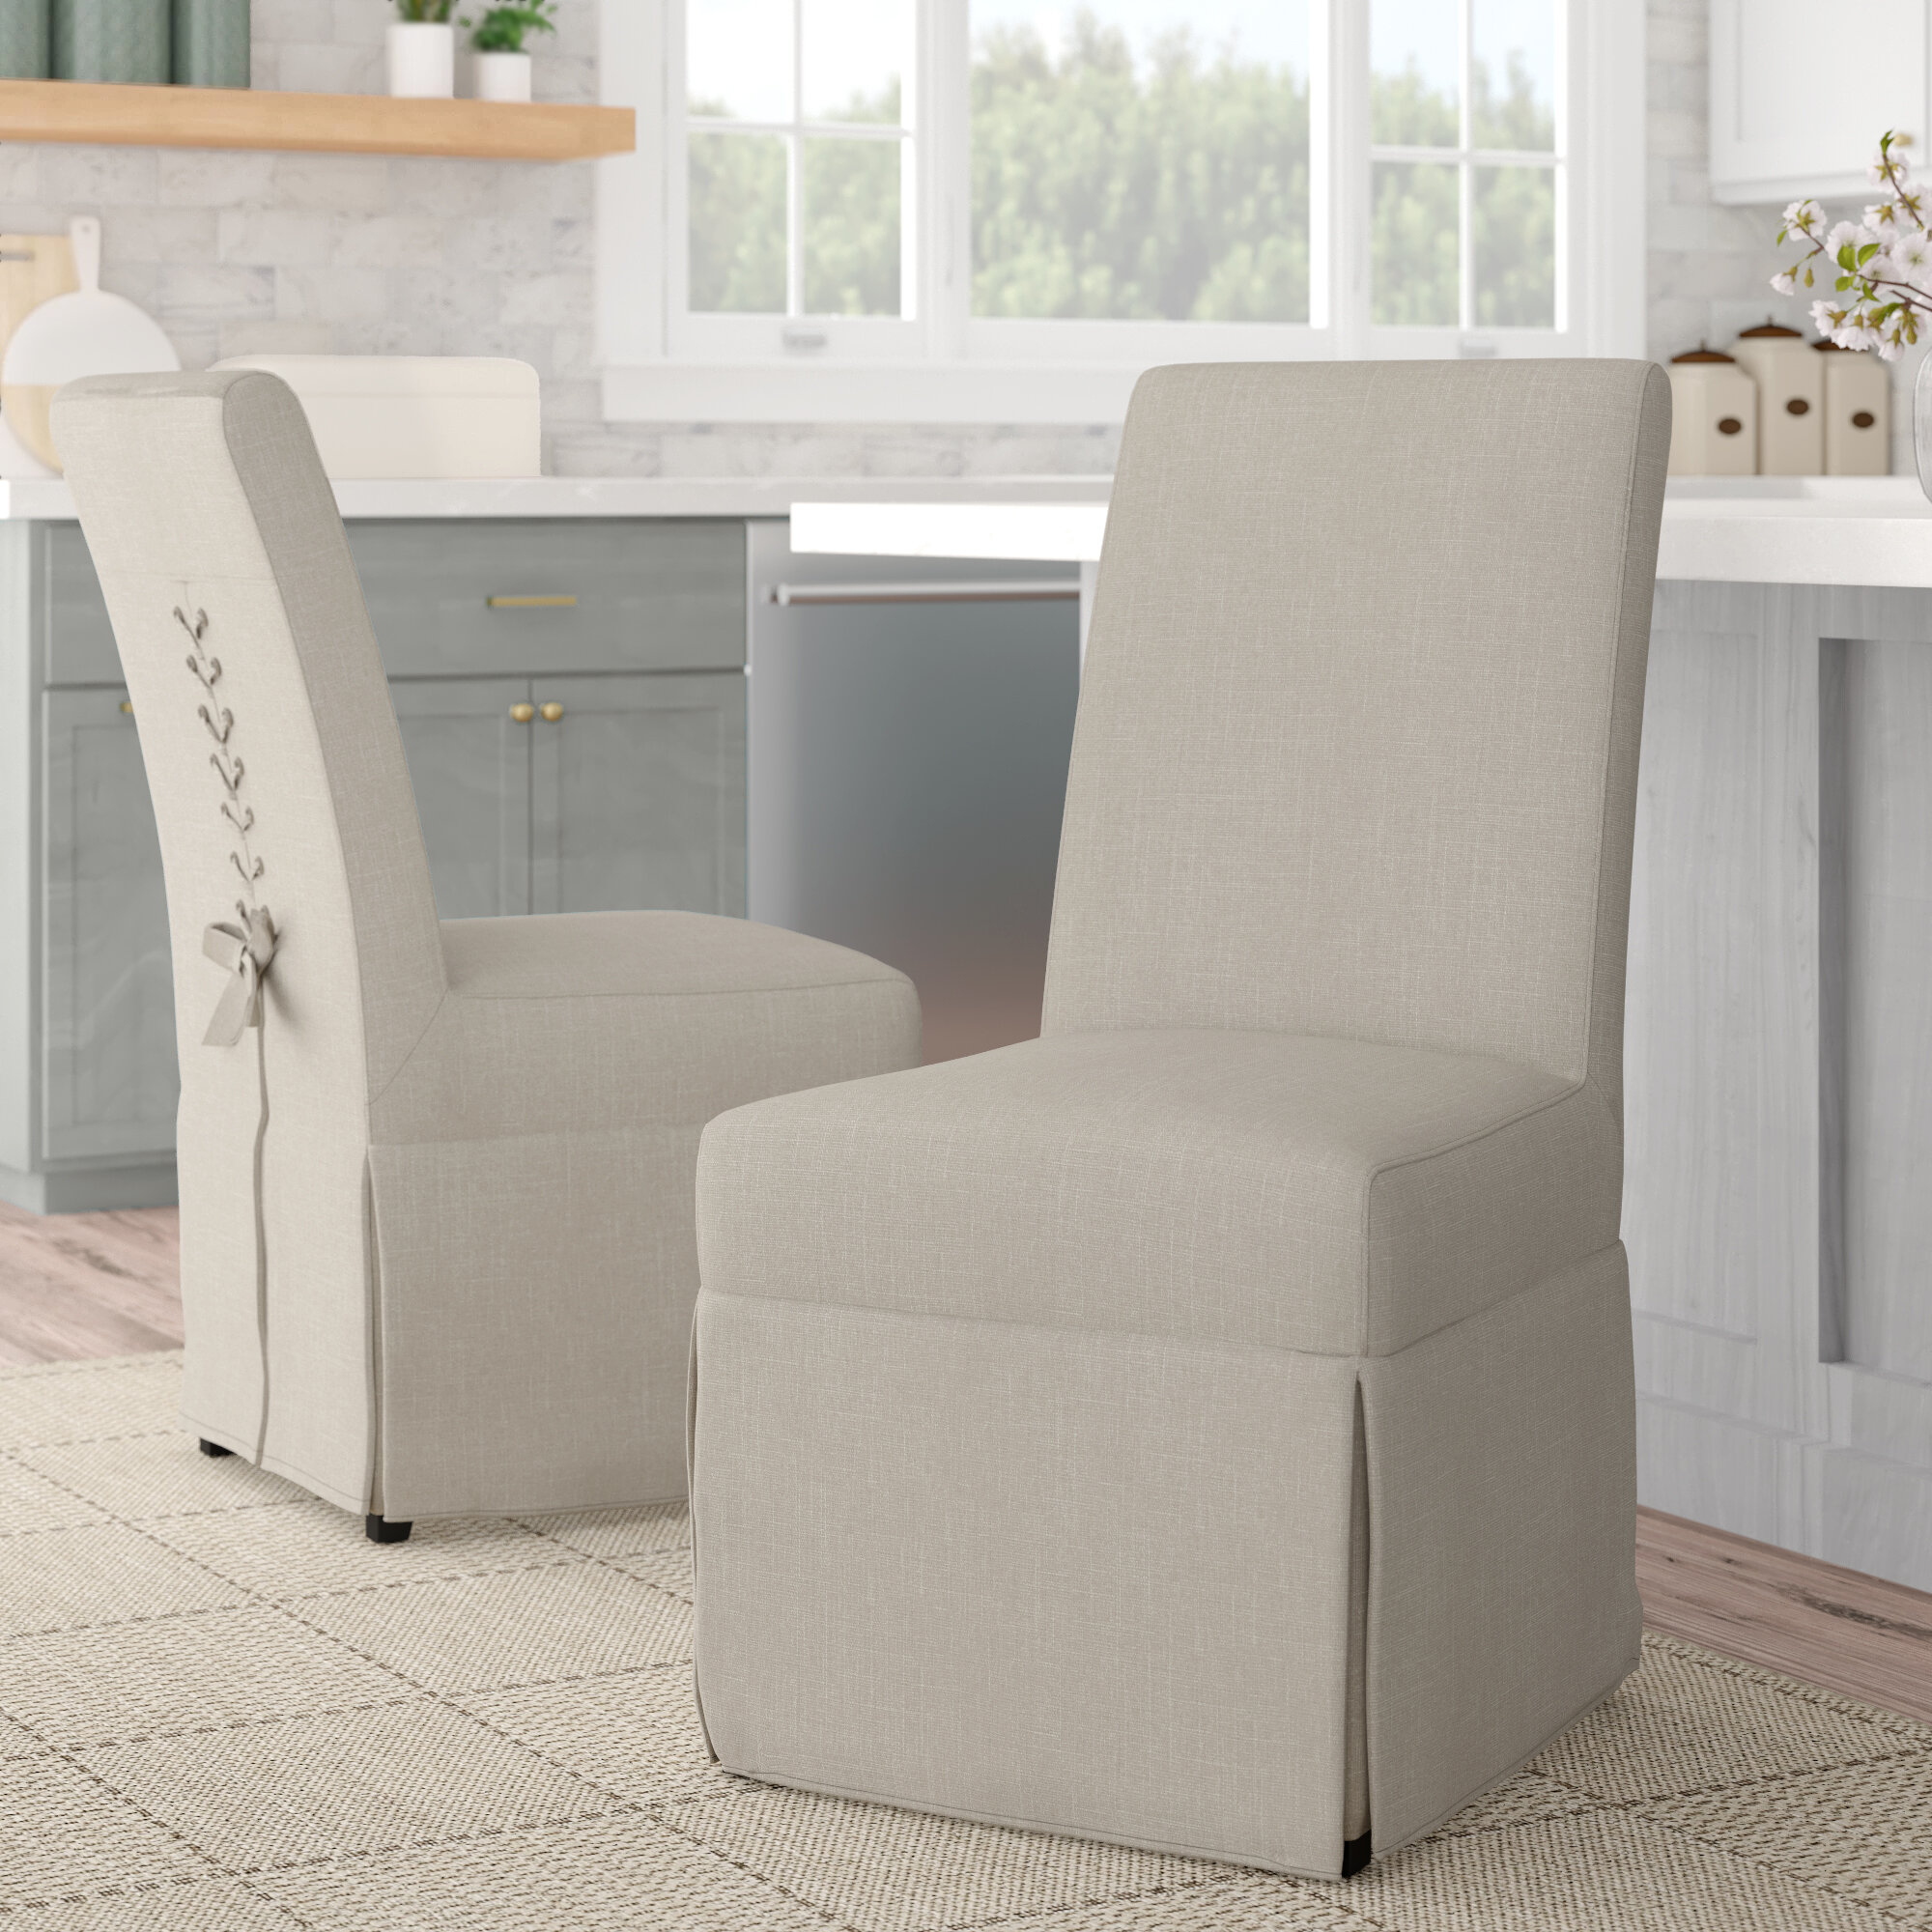 Kesha Upholstered Dining Chair Within Bob Stripe Upholstered Dining Chairs (Set Of 2) (View 11 of 15)